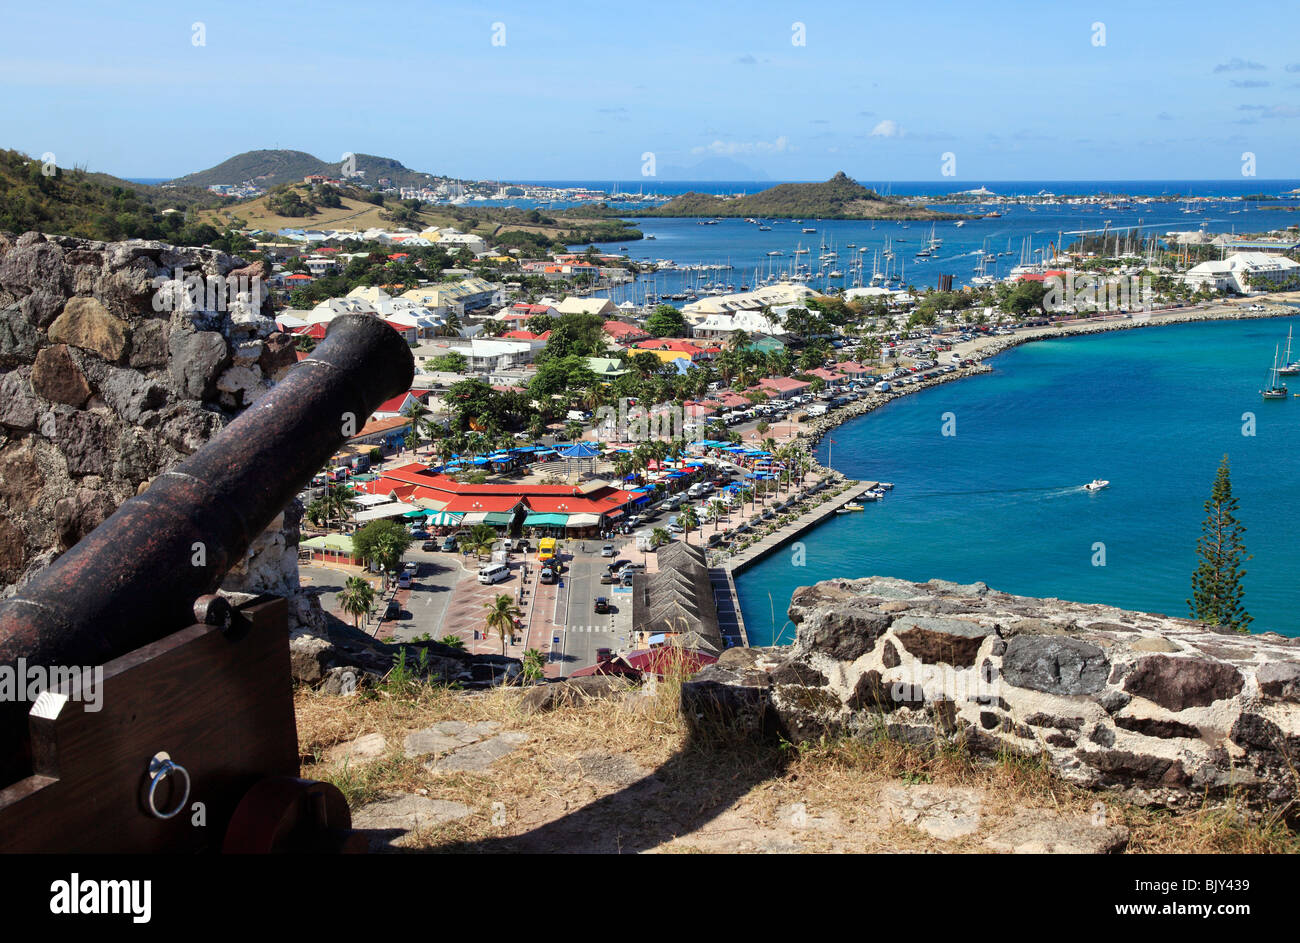 Marigot Bay In St.Martin, view from Fort St.Louis, French Caribbean - Stock Image